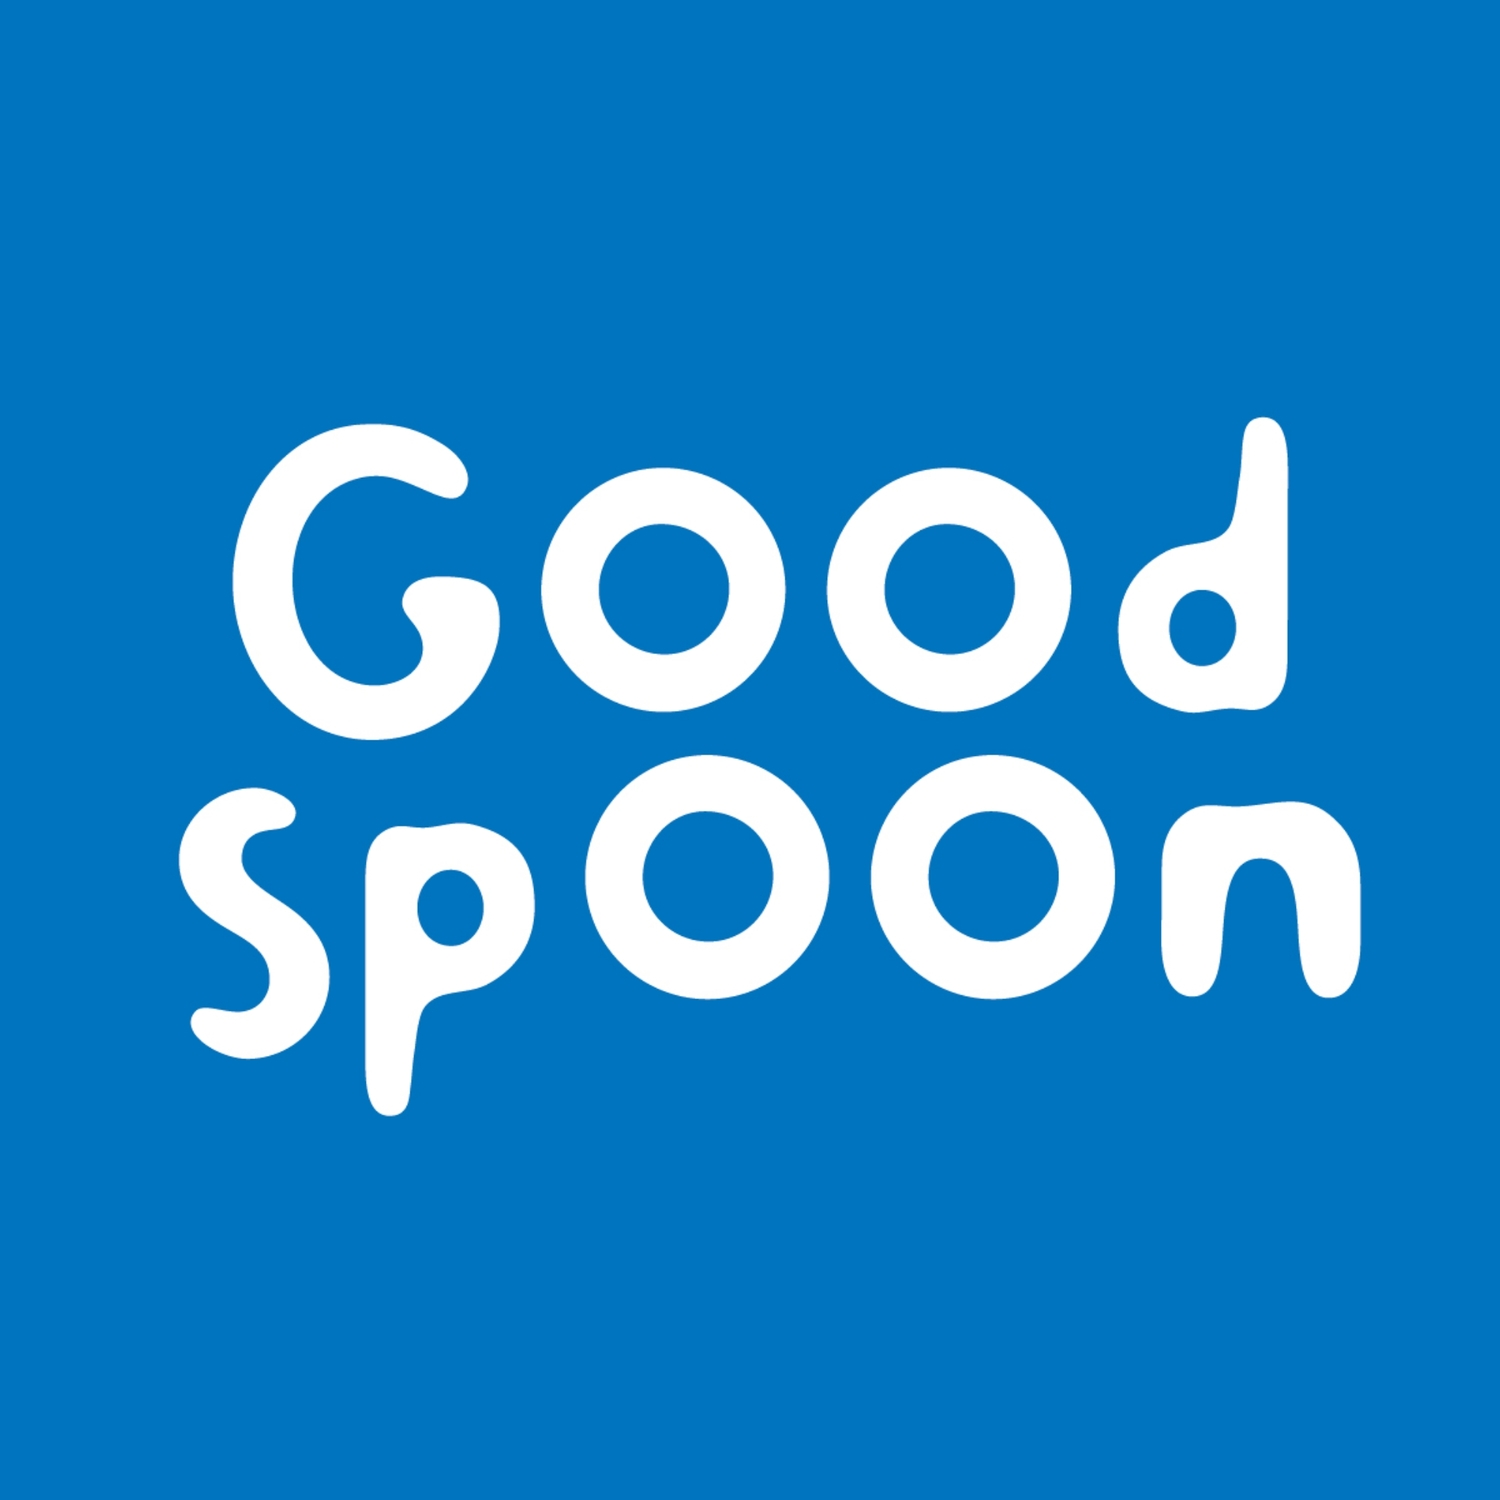 Good Spoon